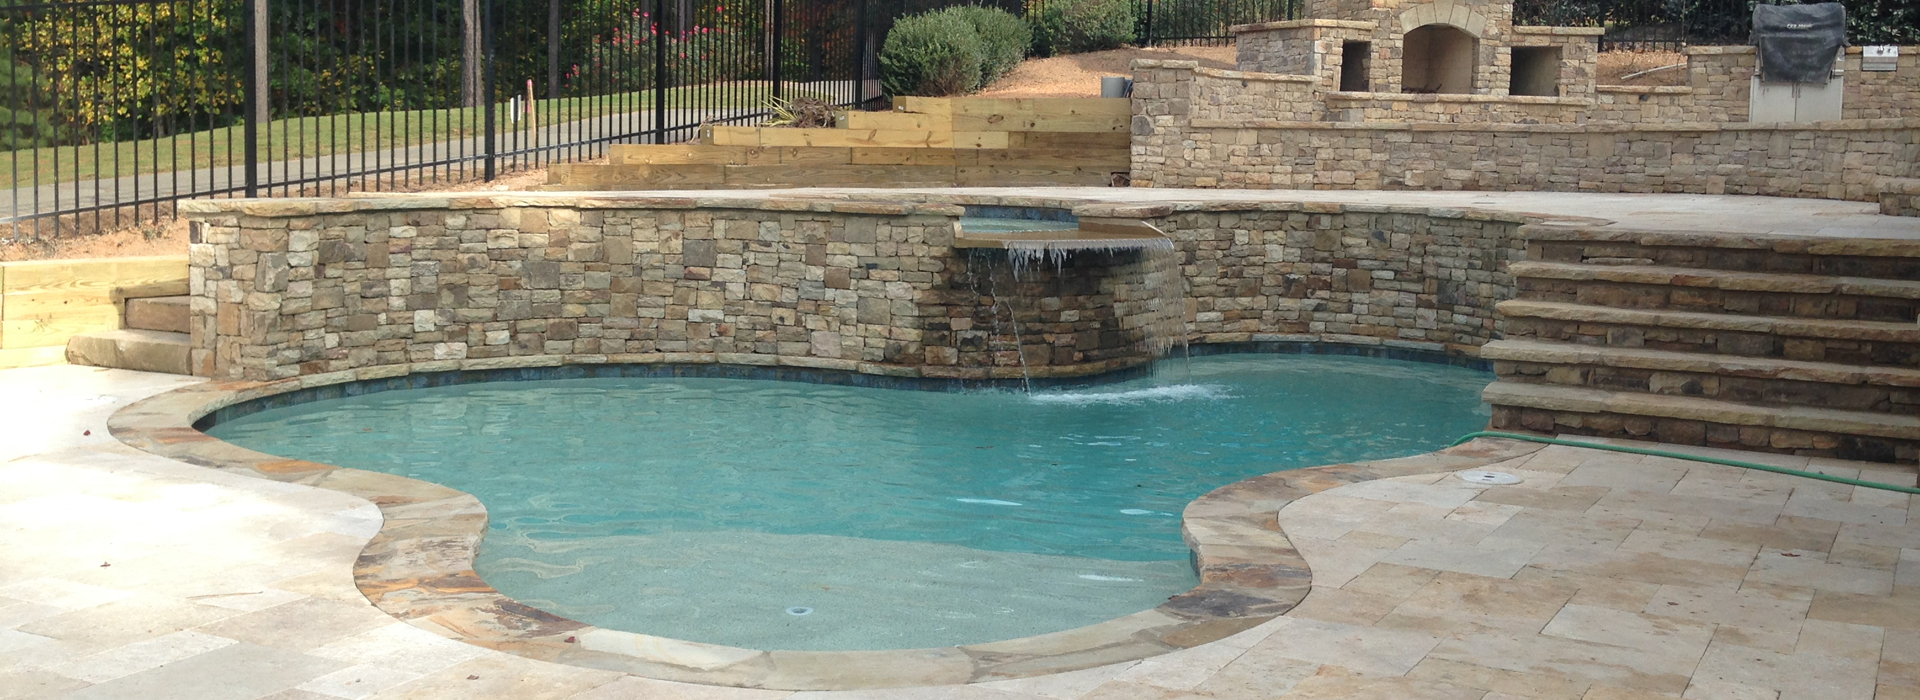 New Pool Design & Construction